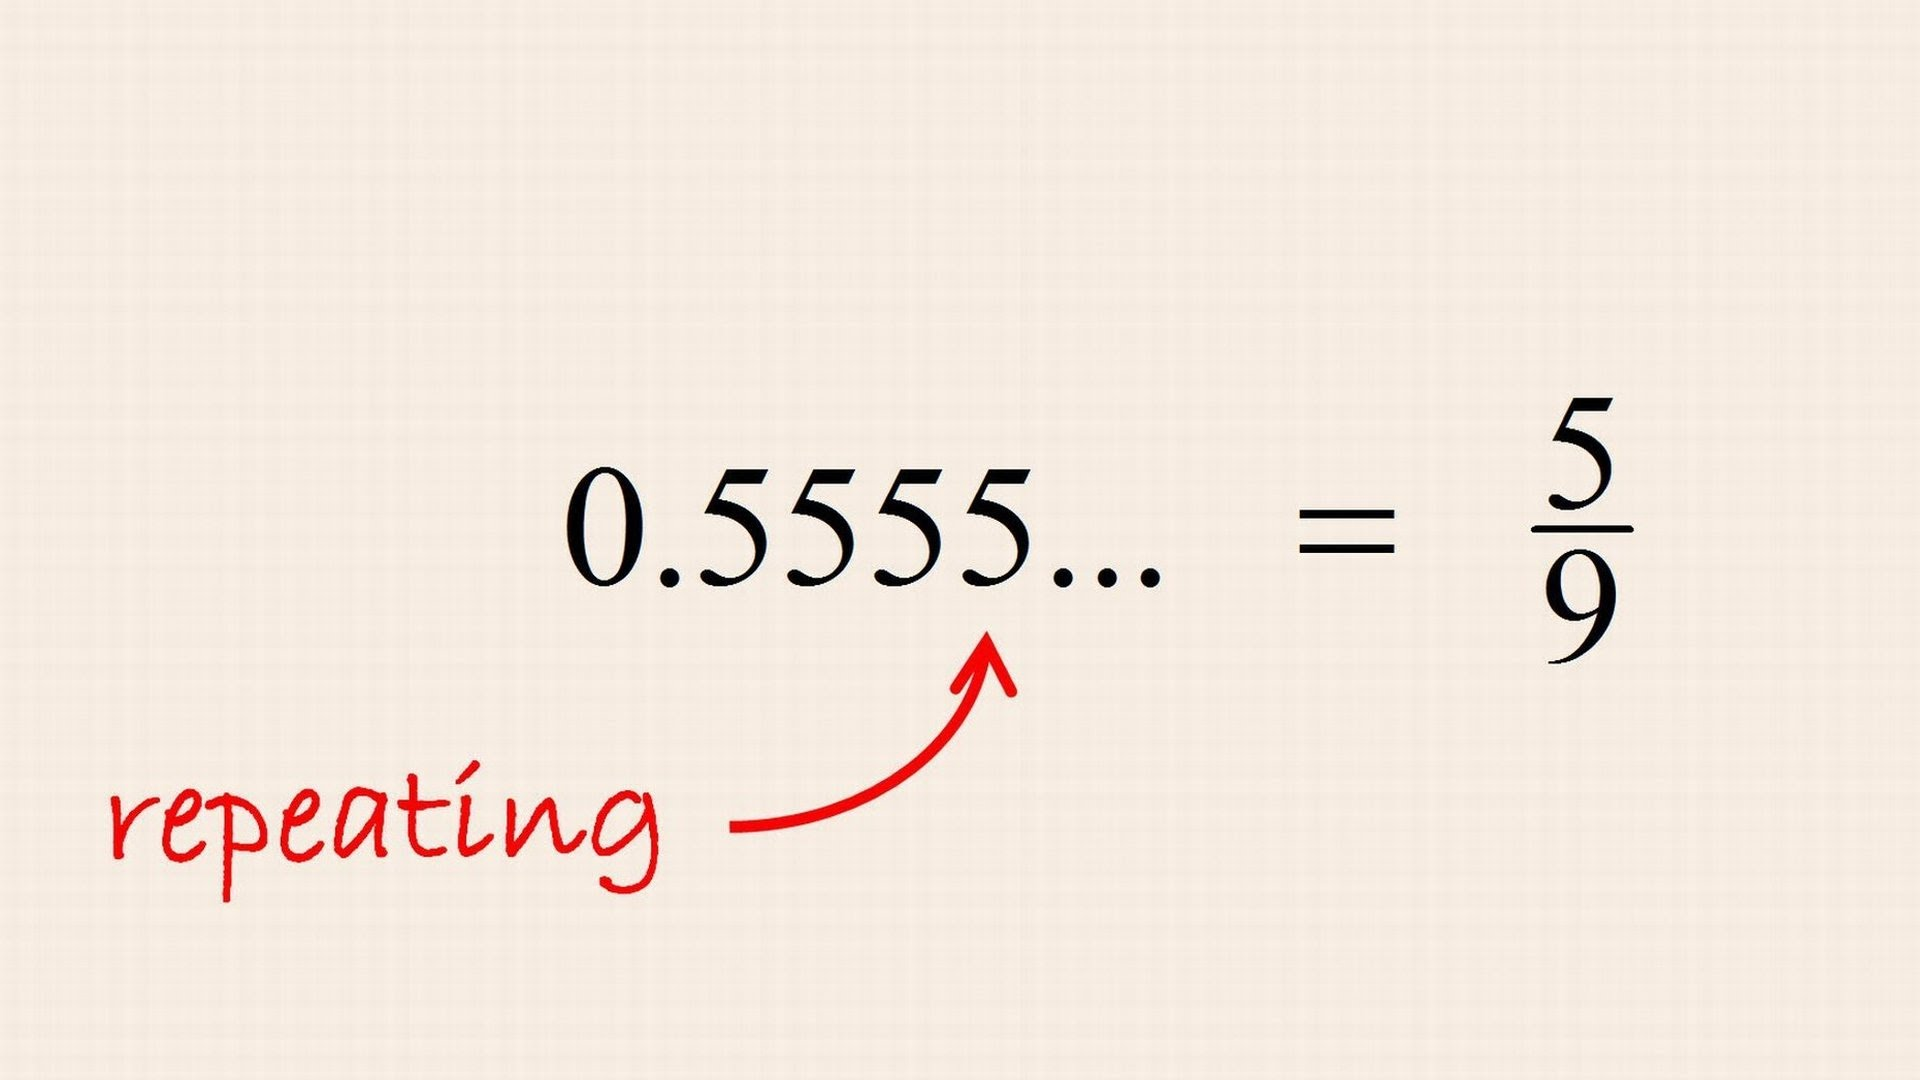 prime number and terminating decimal expansion Prime factorization to check if fractions will be repeating or terminating decimal numbers or non terminating repeating decimal expansion.